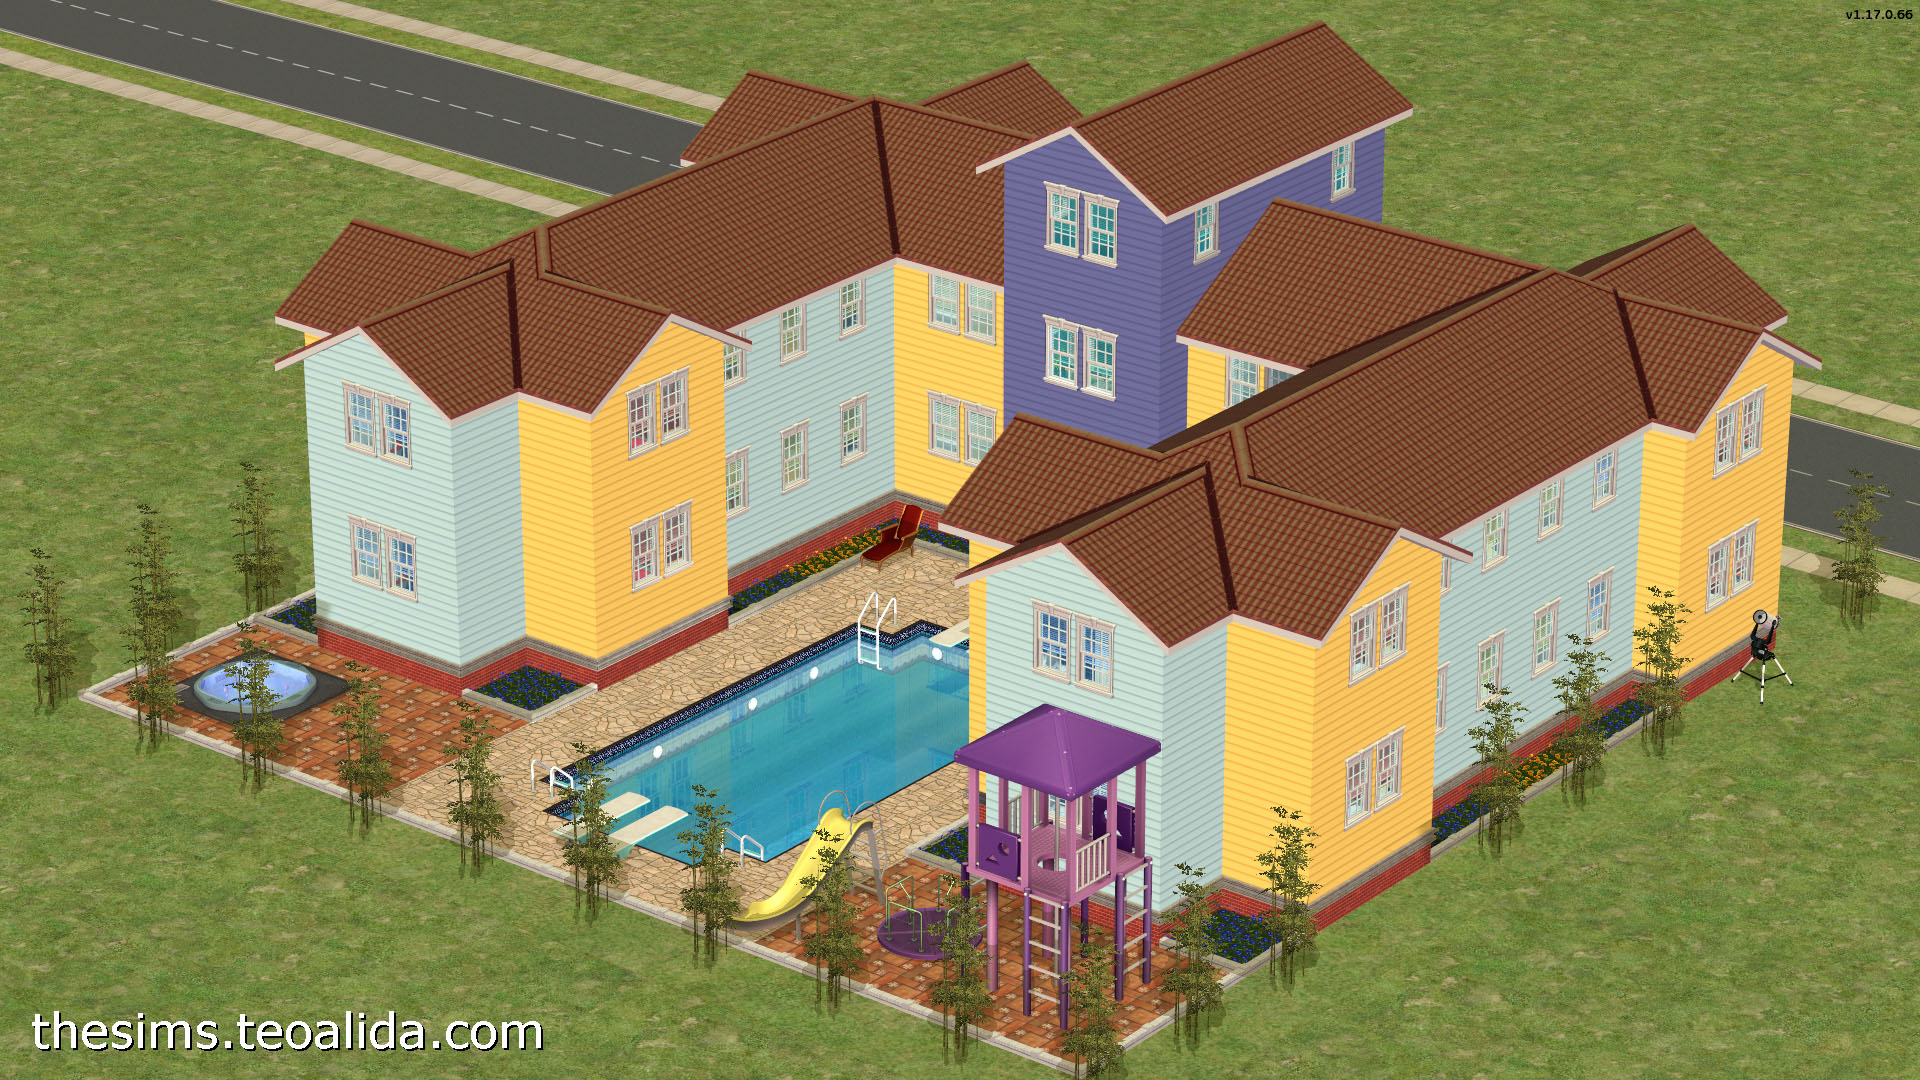 The Sims 2, 3, 4 world downloads and house floor plans - Part 3